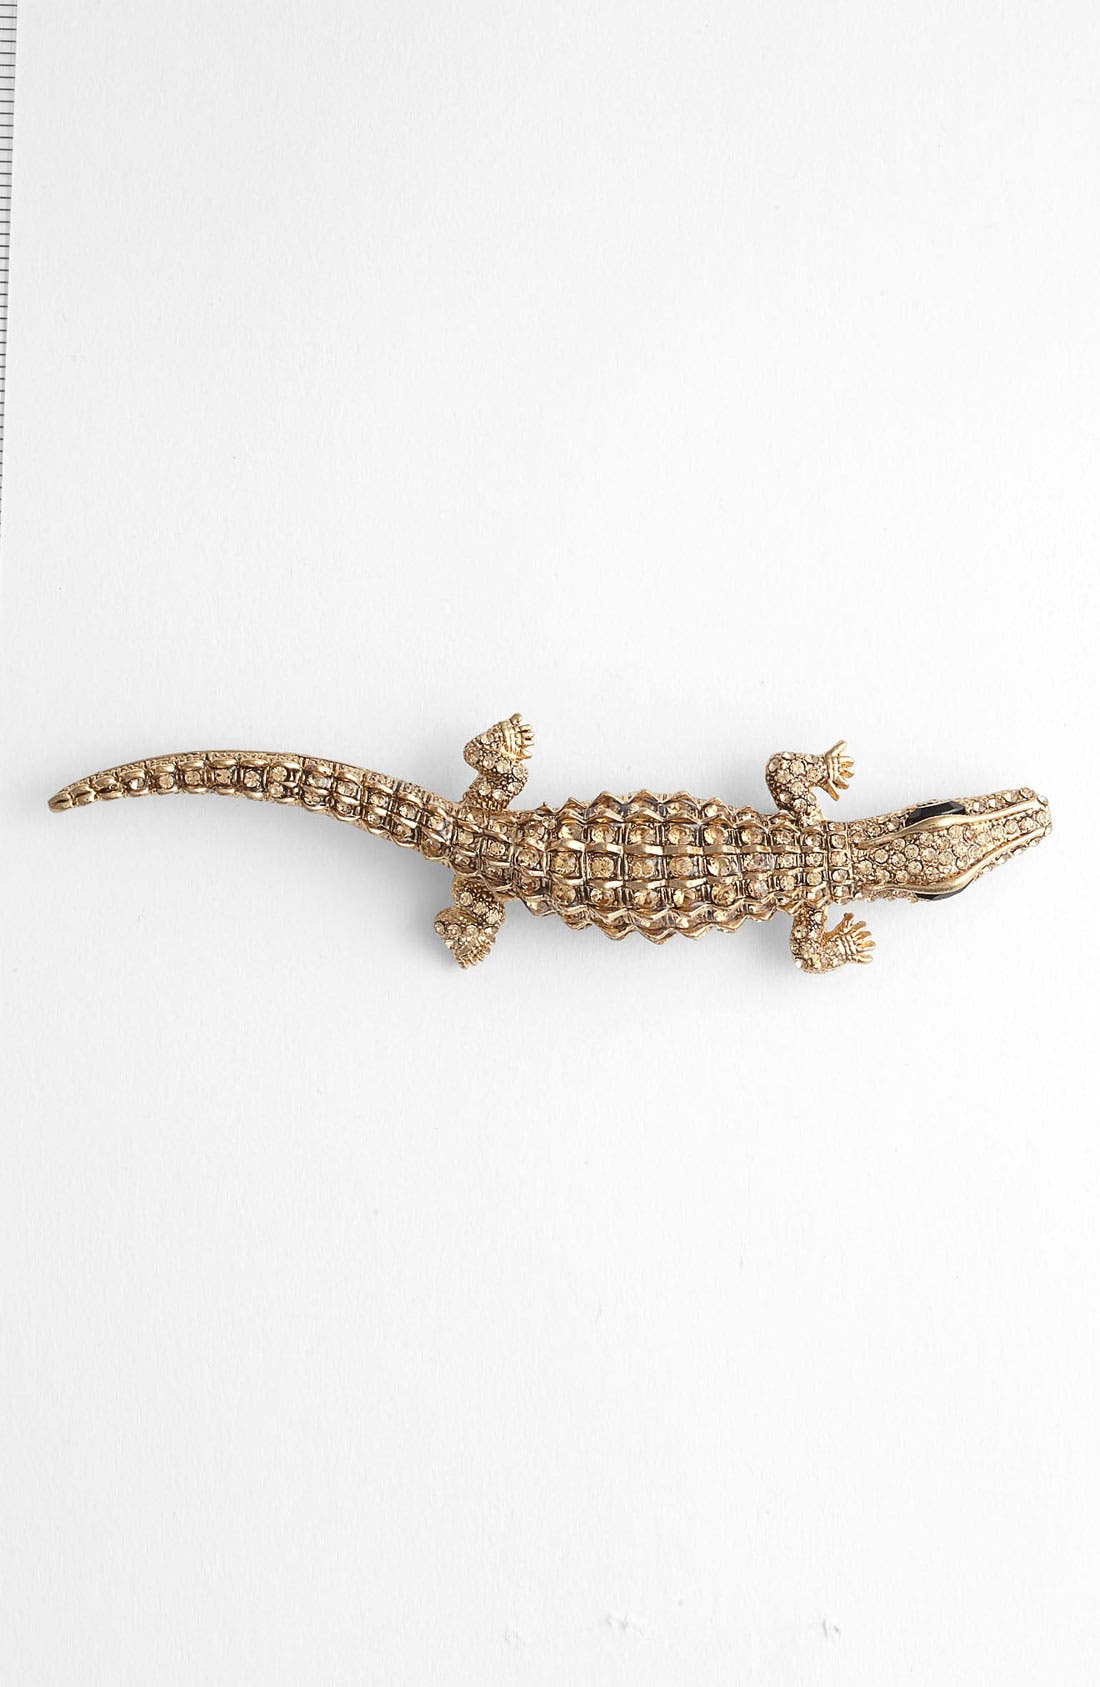 Alternate Image 1 Selected - Tasha 'Critters' Alligator Brooch